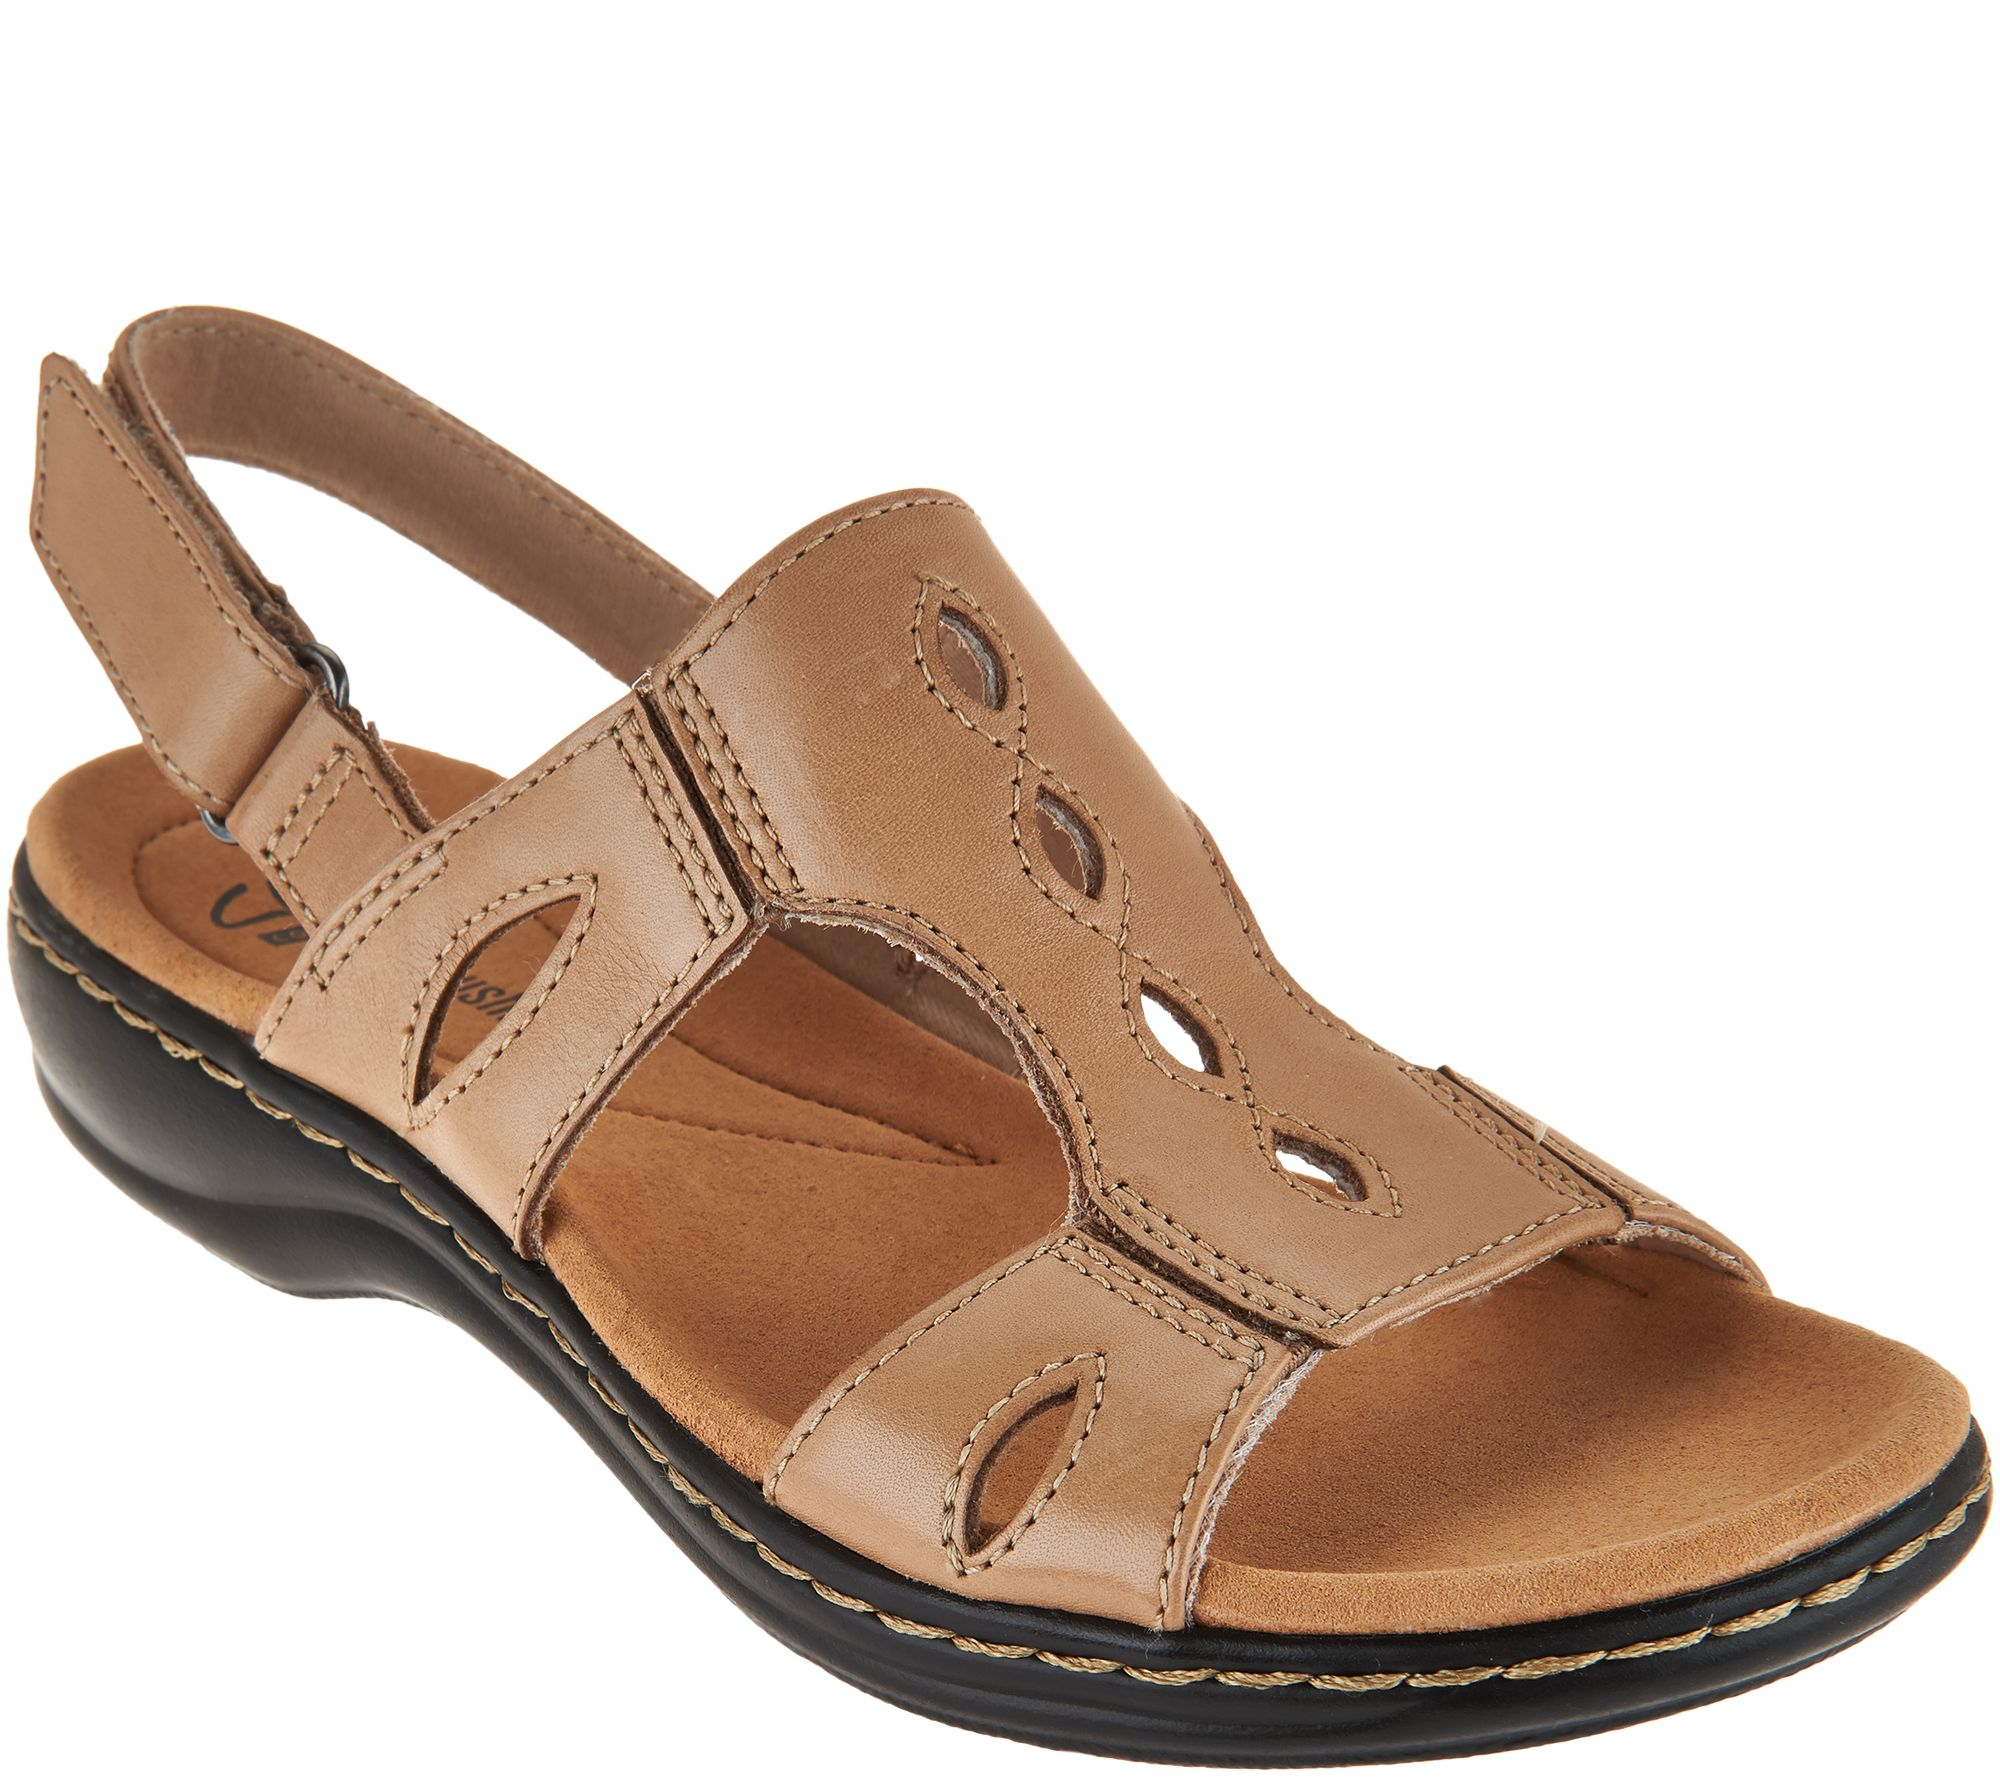 1342036e3407 Clarks Leather Lightweight Sandals - Leisa Lakelyn - Page 1 — QVC.com